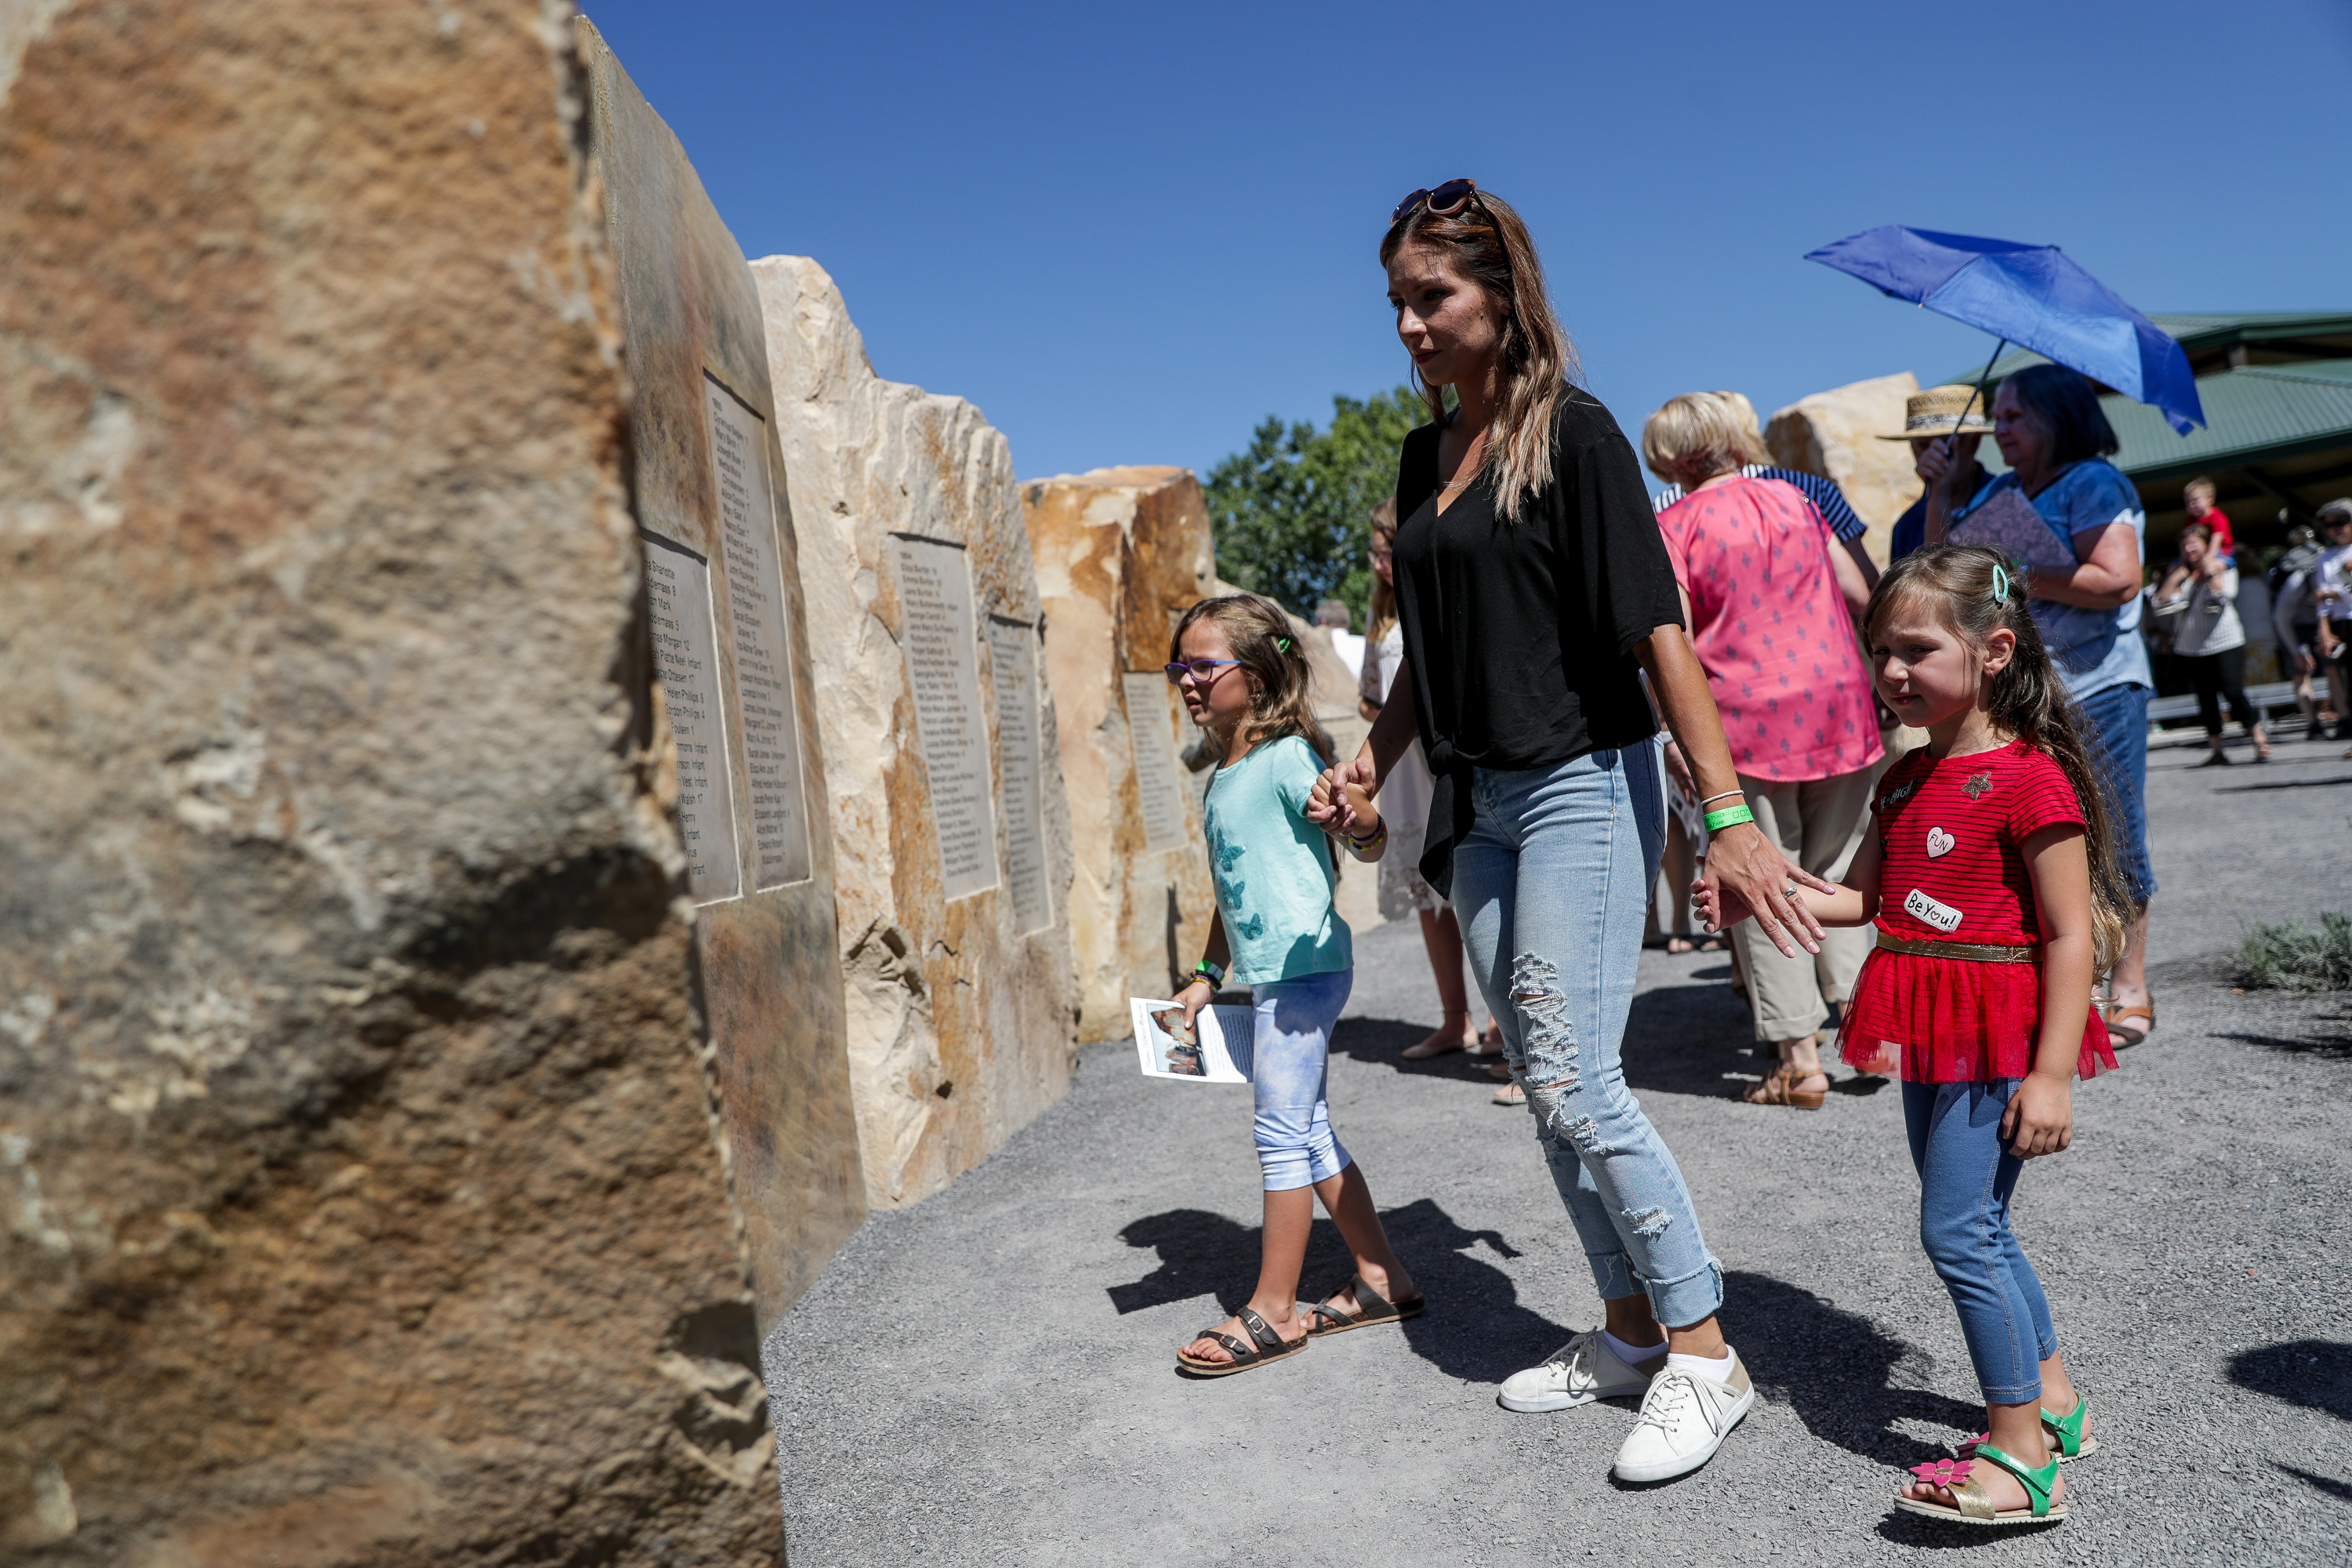 Carolina Murri and her daughters, Fernanda Diaz, 7, and Valentina Diaz, 4, of Herriman, Utah, tour the Children's Pioneer Memorial at This Is the Place Heritage Park after its dedication in Salt Lake City on Saturday, July 20, 2019.